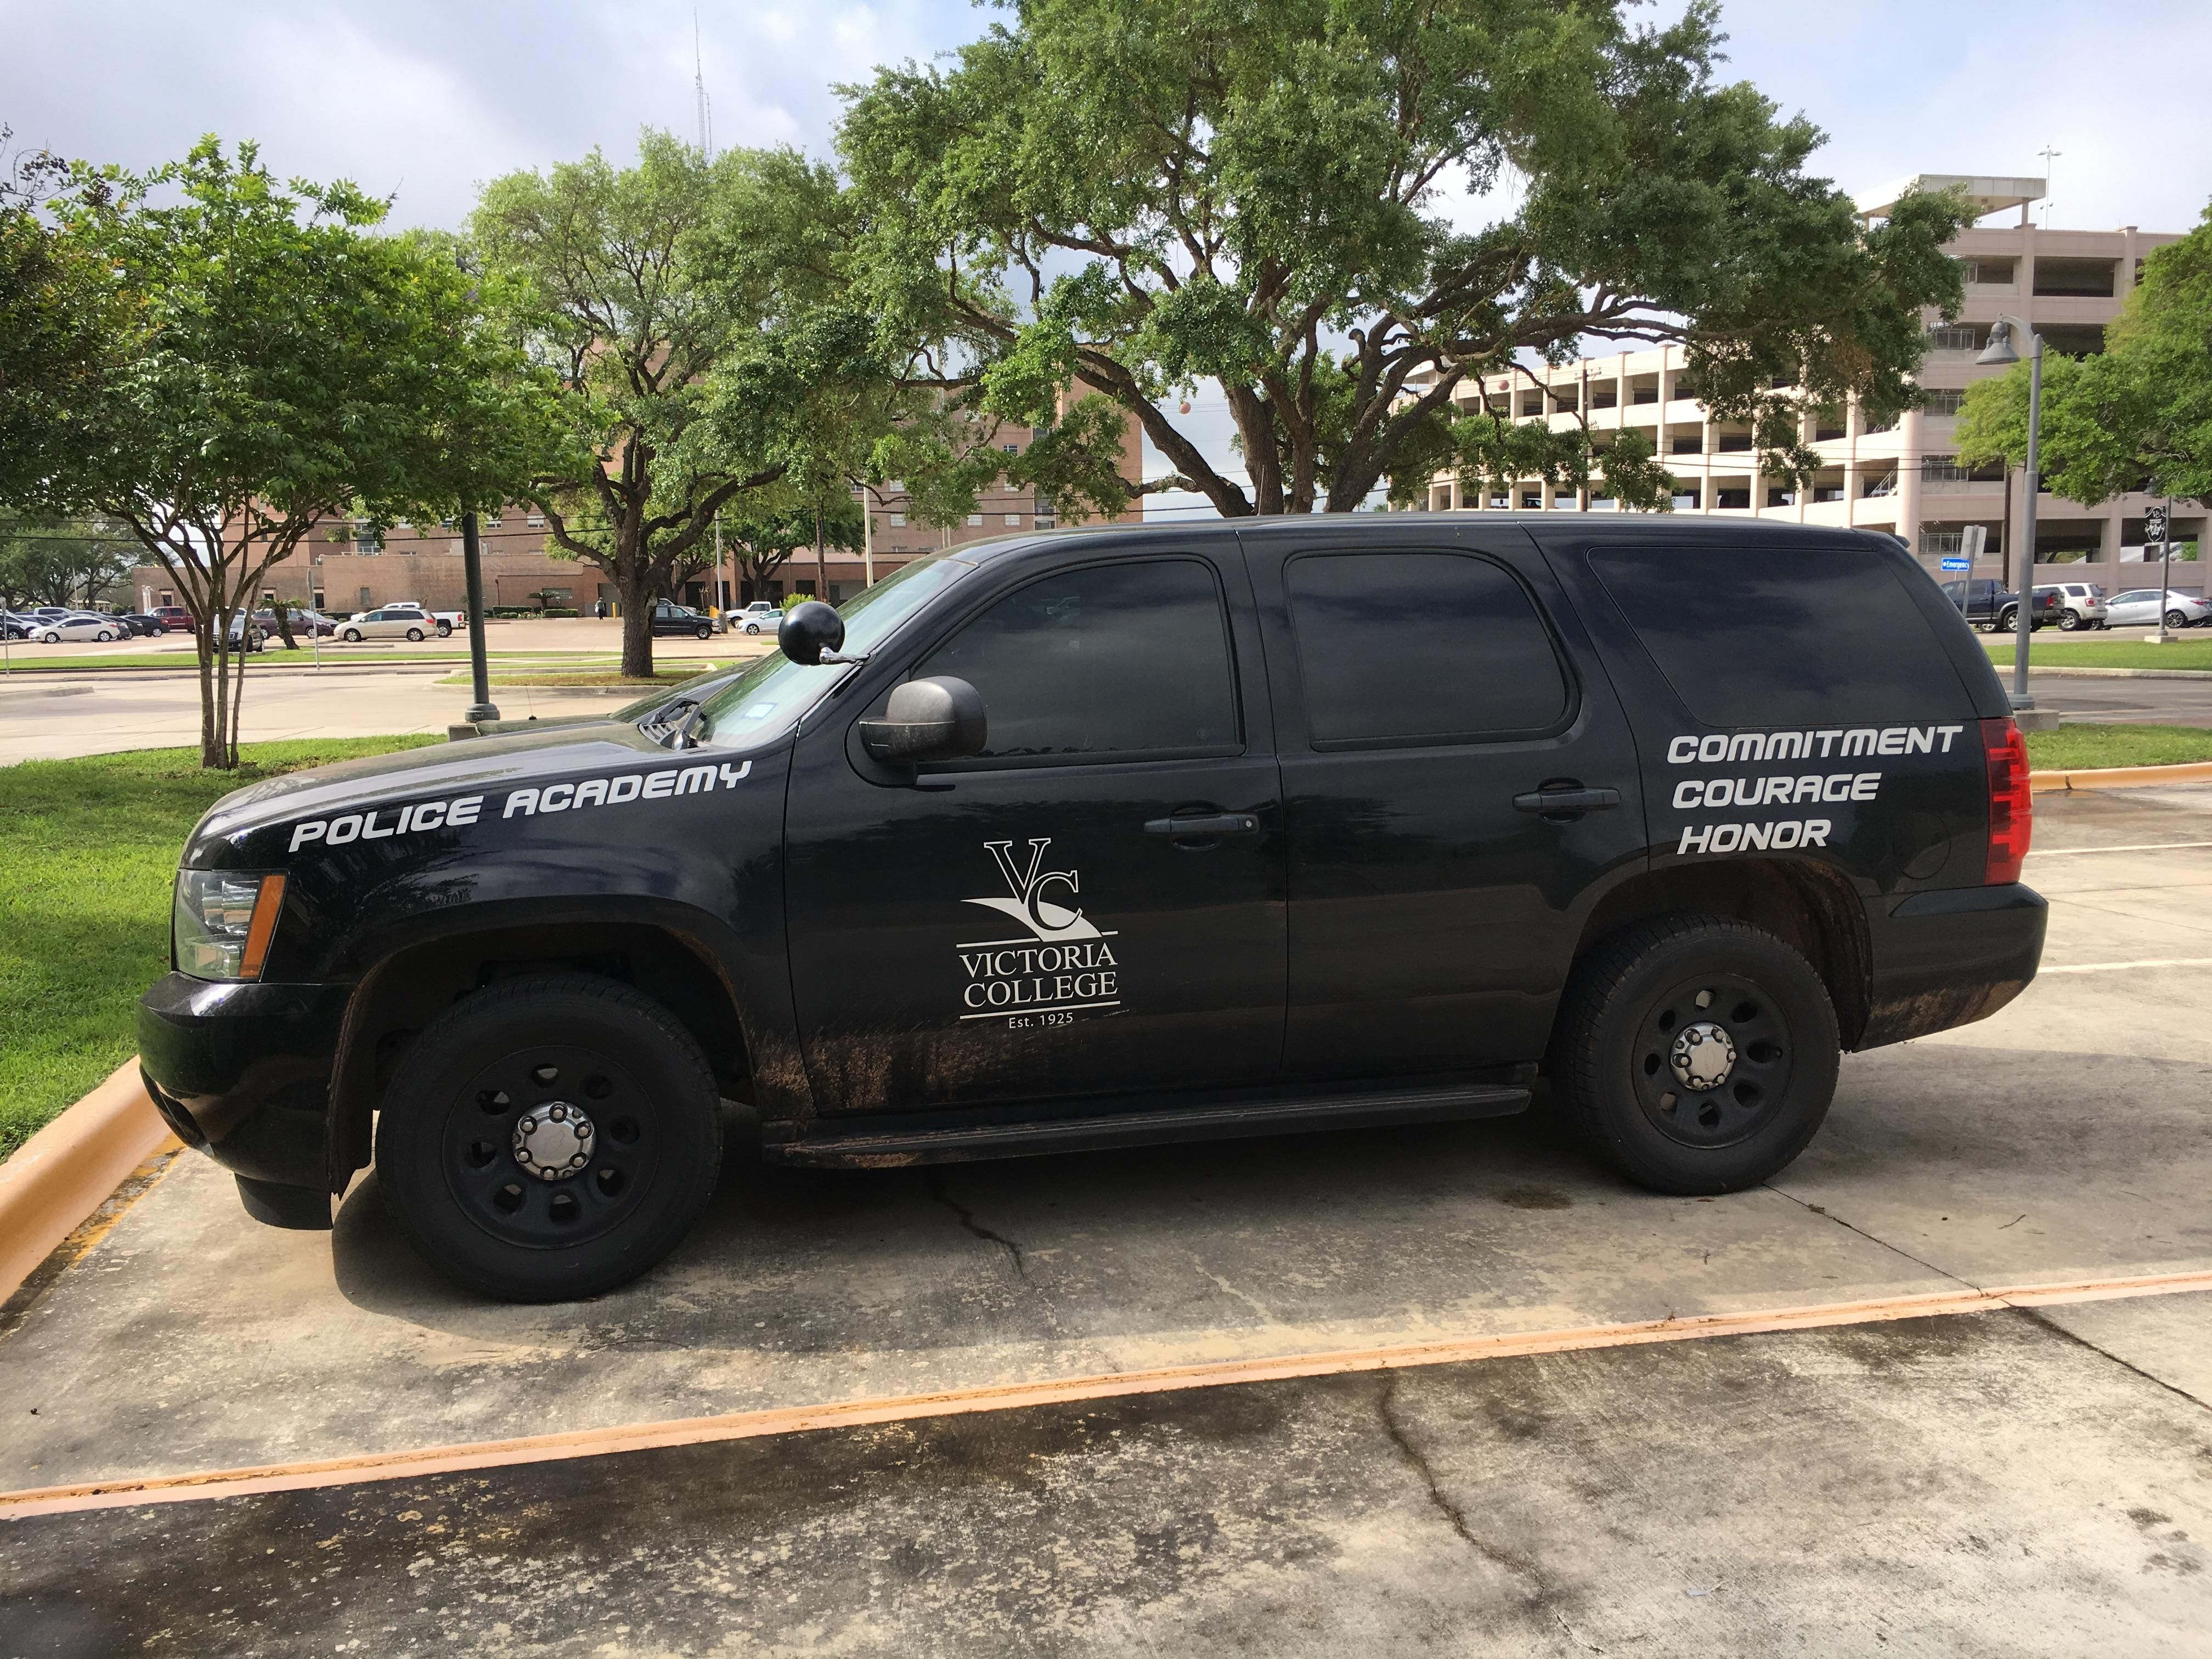 Victoria college police academy chevy tahoe texas